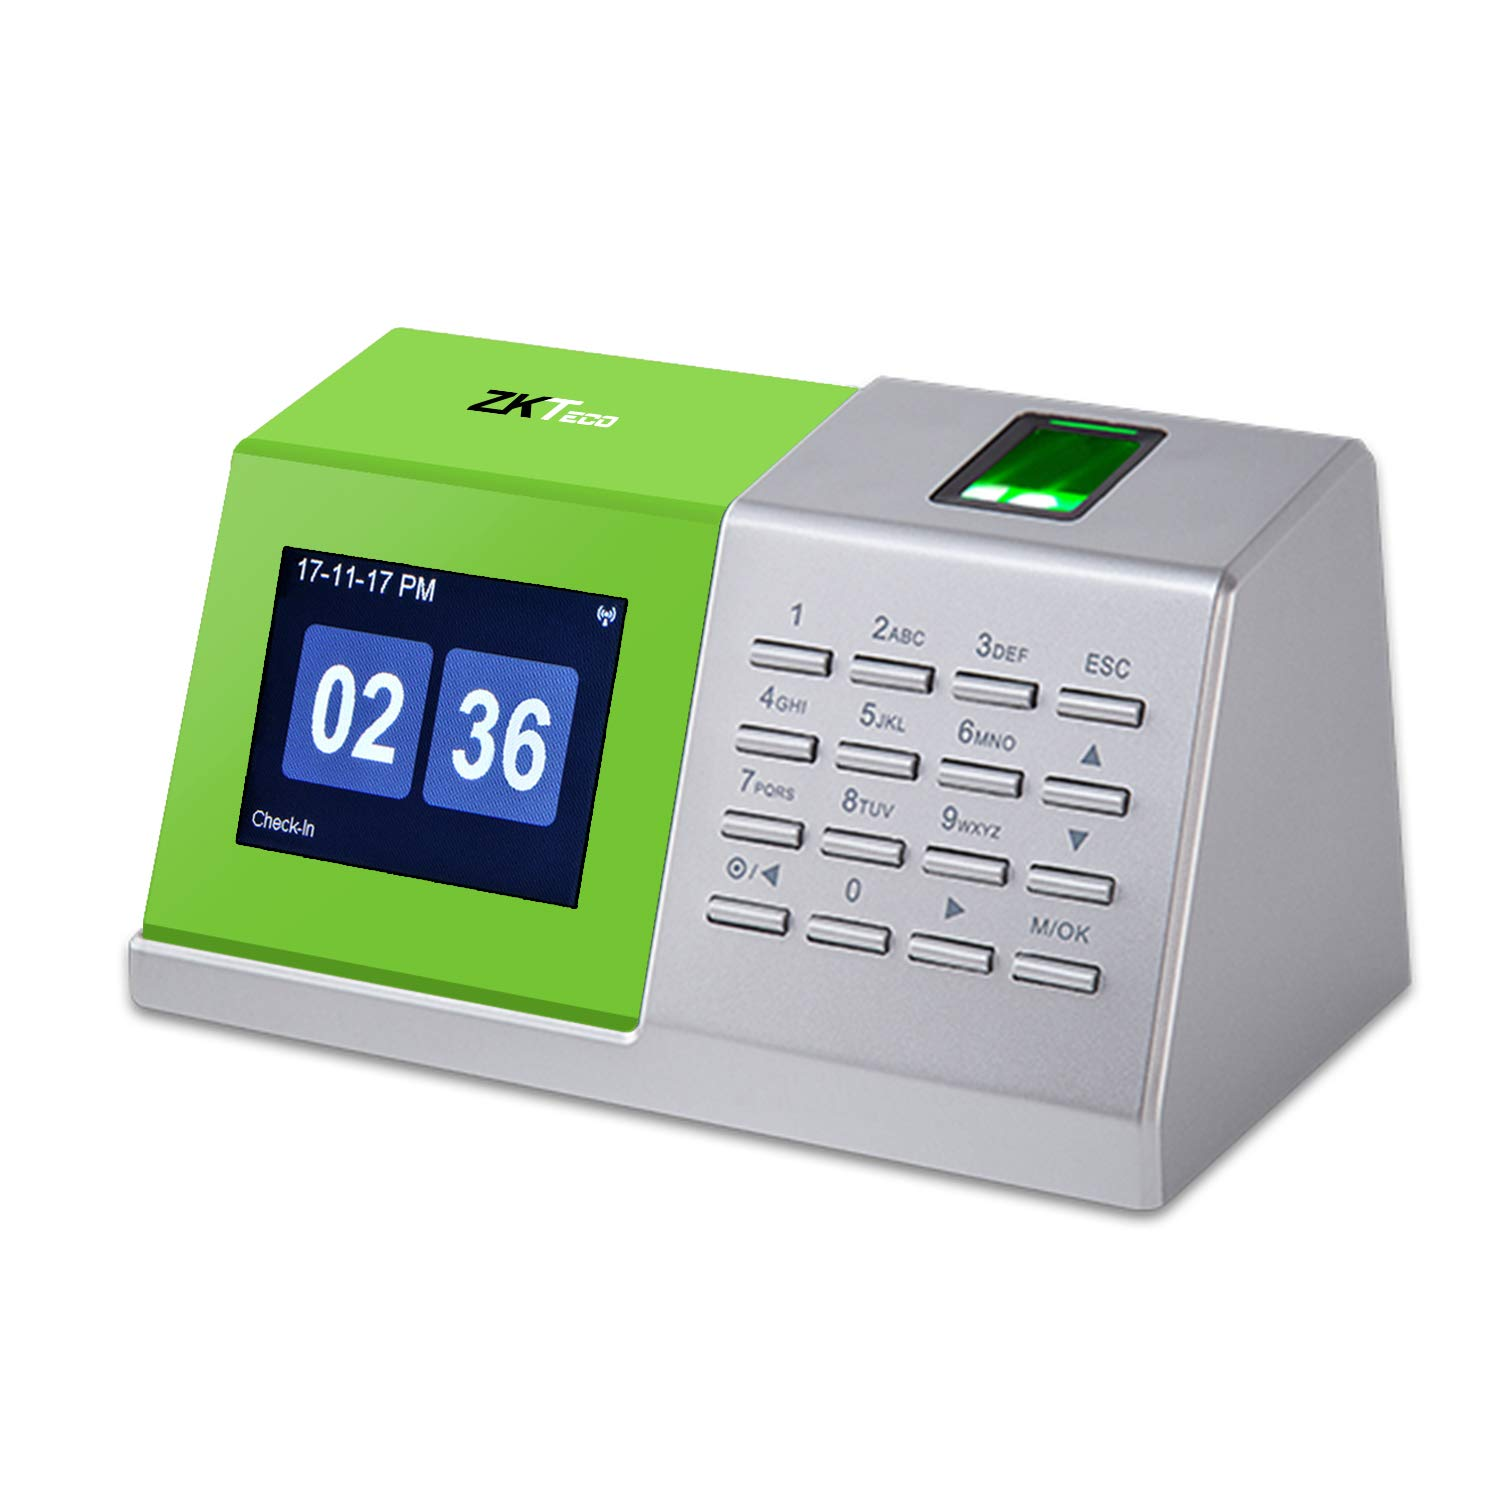 ZKTeco Fingerprint Attendance Time Tracking Installation